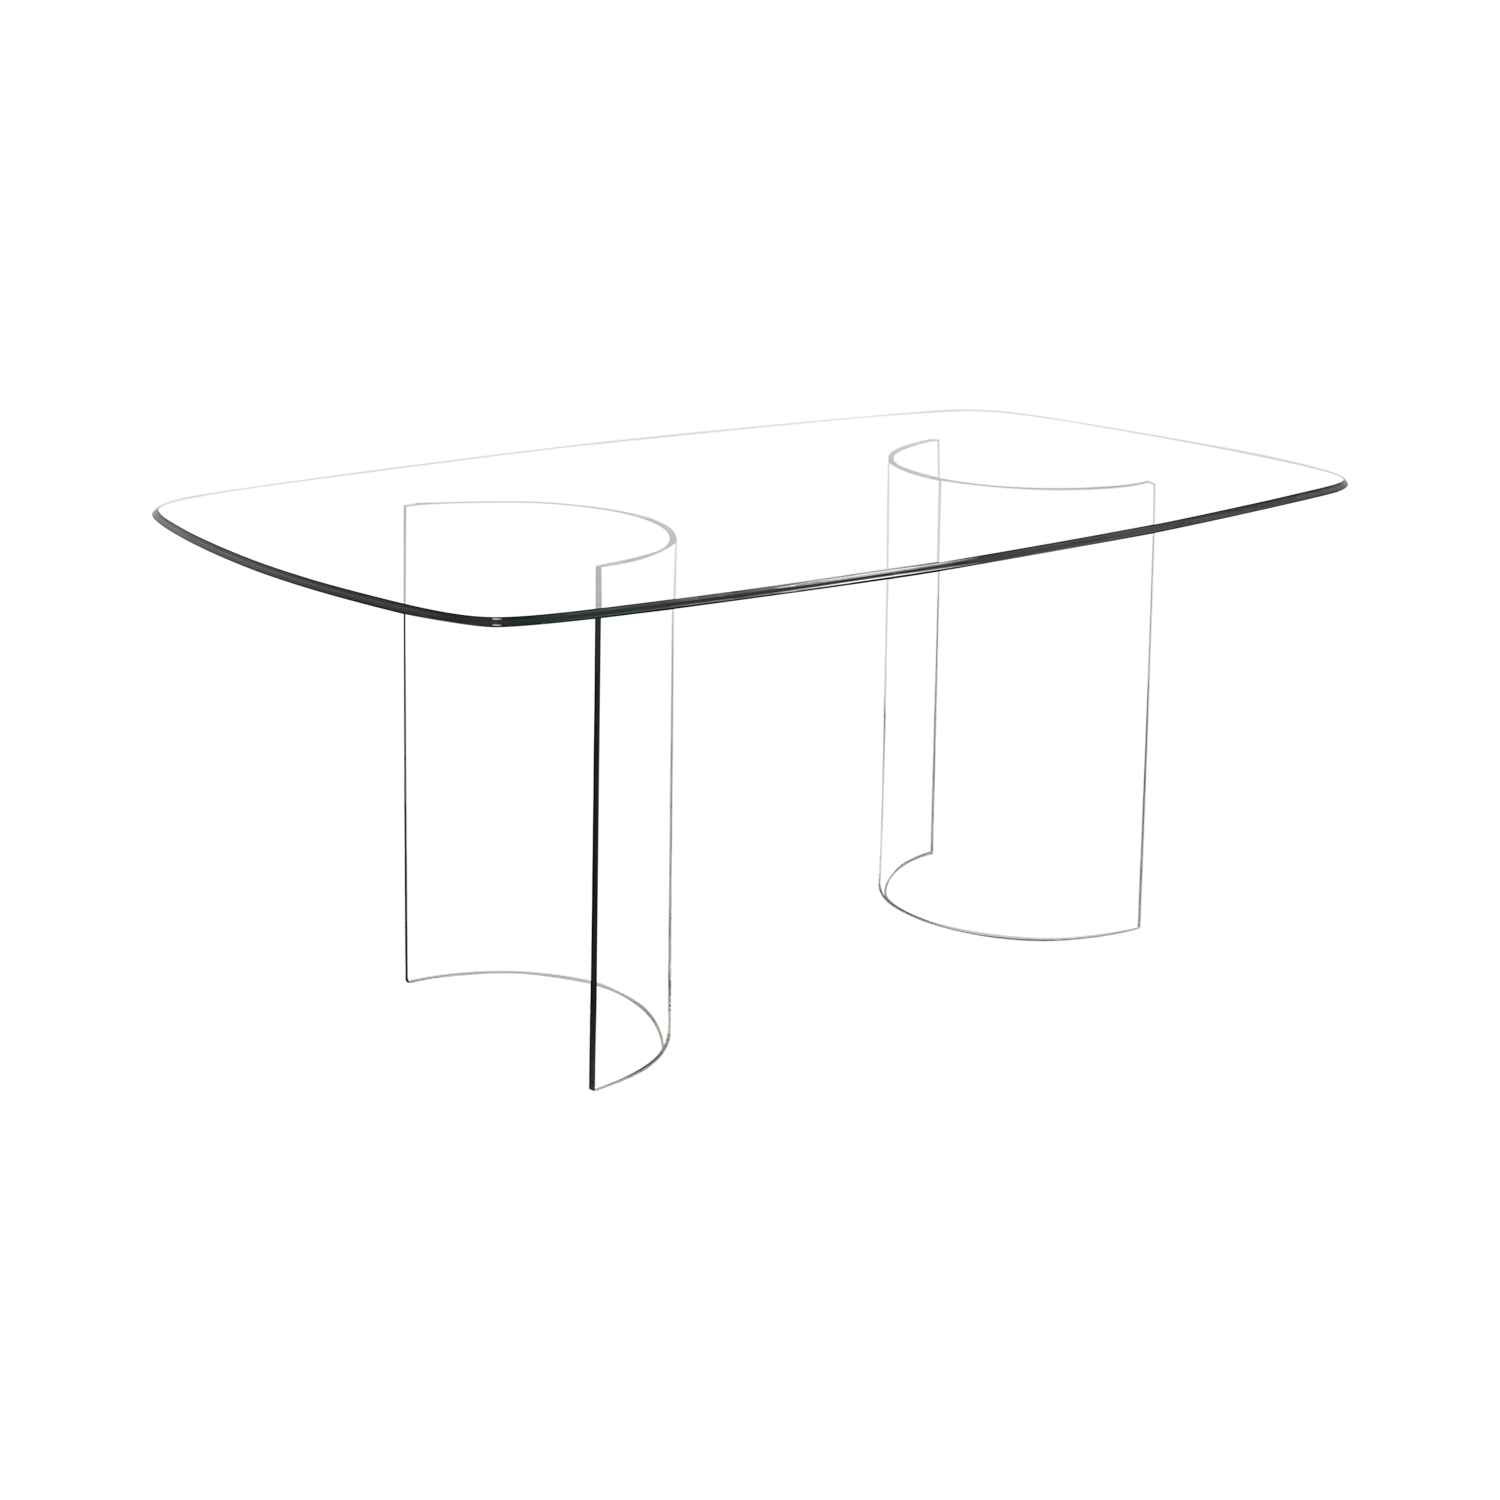 Raymour & Flanigan Raymour & Flanigan Beveled Tempered Glass Dining Table on sale